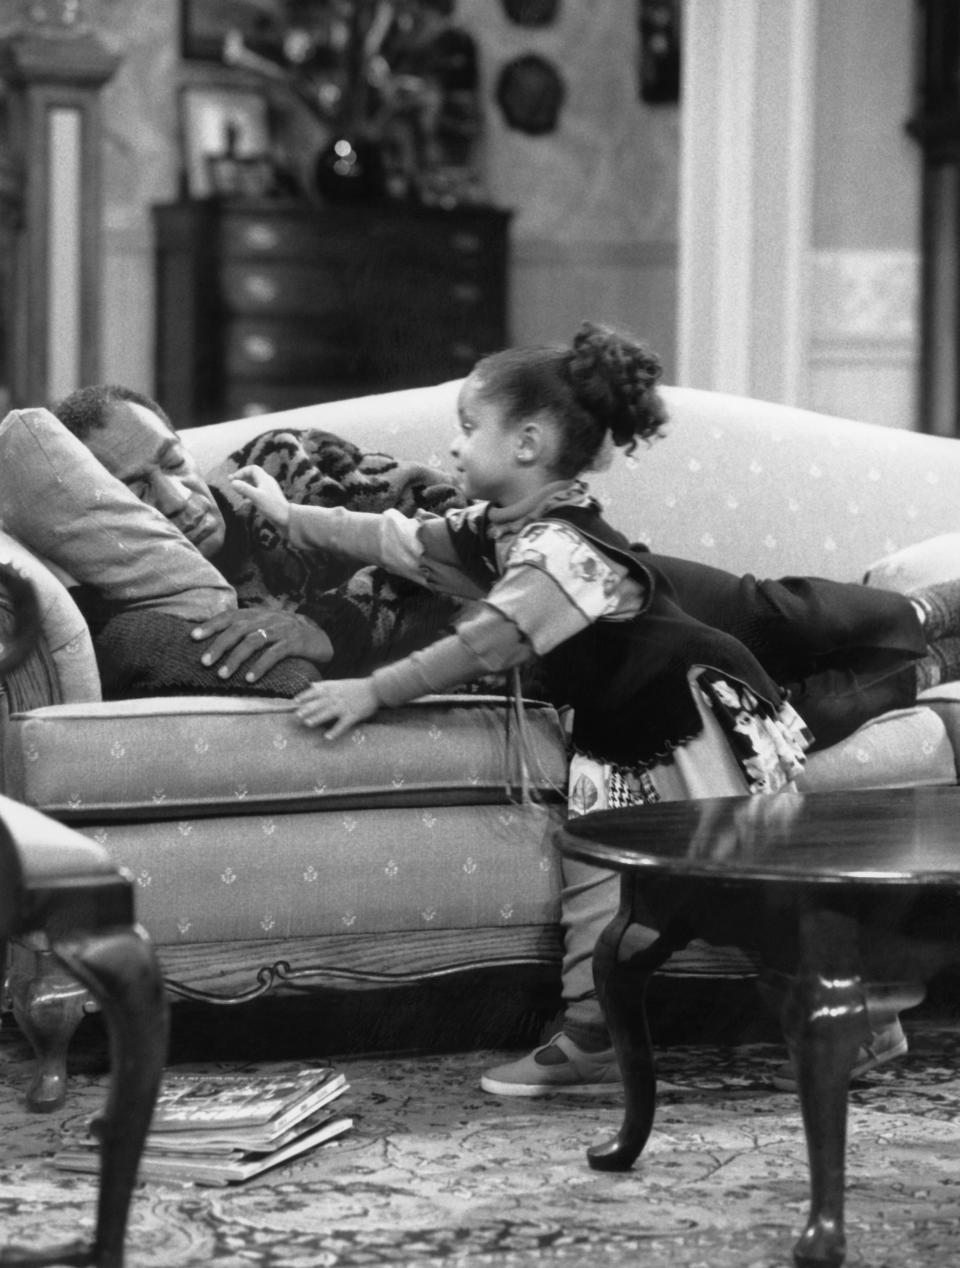 """THE COSBY SHOW -- """"Denise Kendall: Navy Wife"""" Episode 4 -- Air Date 10/12/1989 -- Pictured: (l-r) Bill Cosby as Dr. Heathcliff 'Cliff' Huxtable, Raven-SymonT as Olivia Kendall  (Photo by NBCU Photo Bank/NBCUniversal via Getty Images via Getty Images)"""